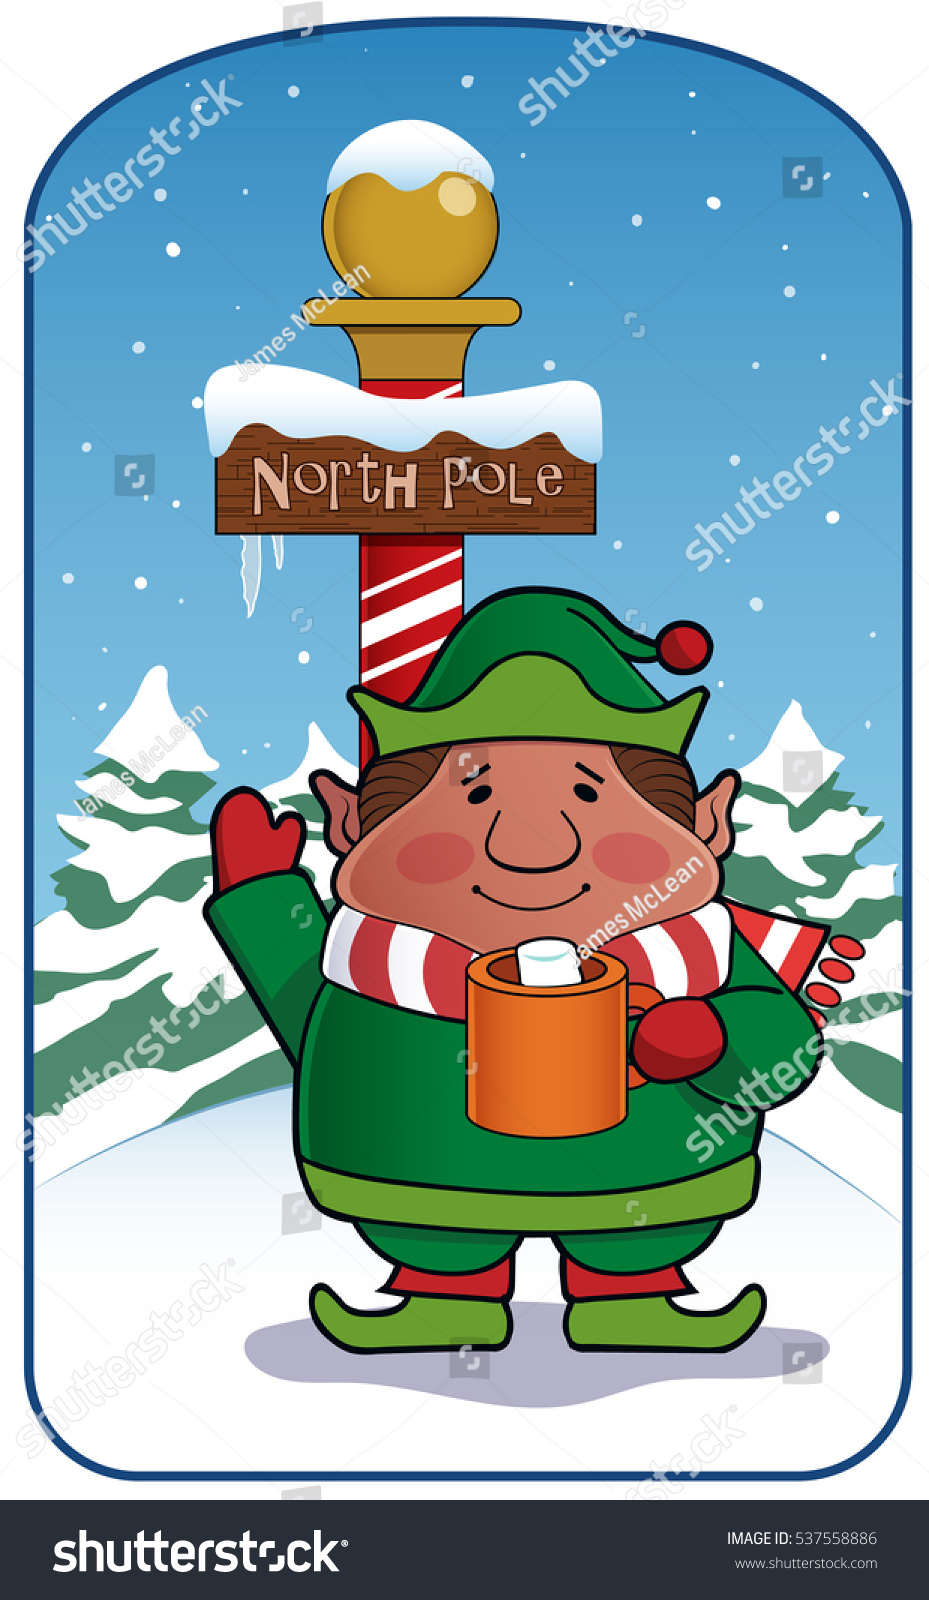 Greetings North Pole Elf Gives Friendly Stock Vector Royalty Free